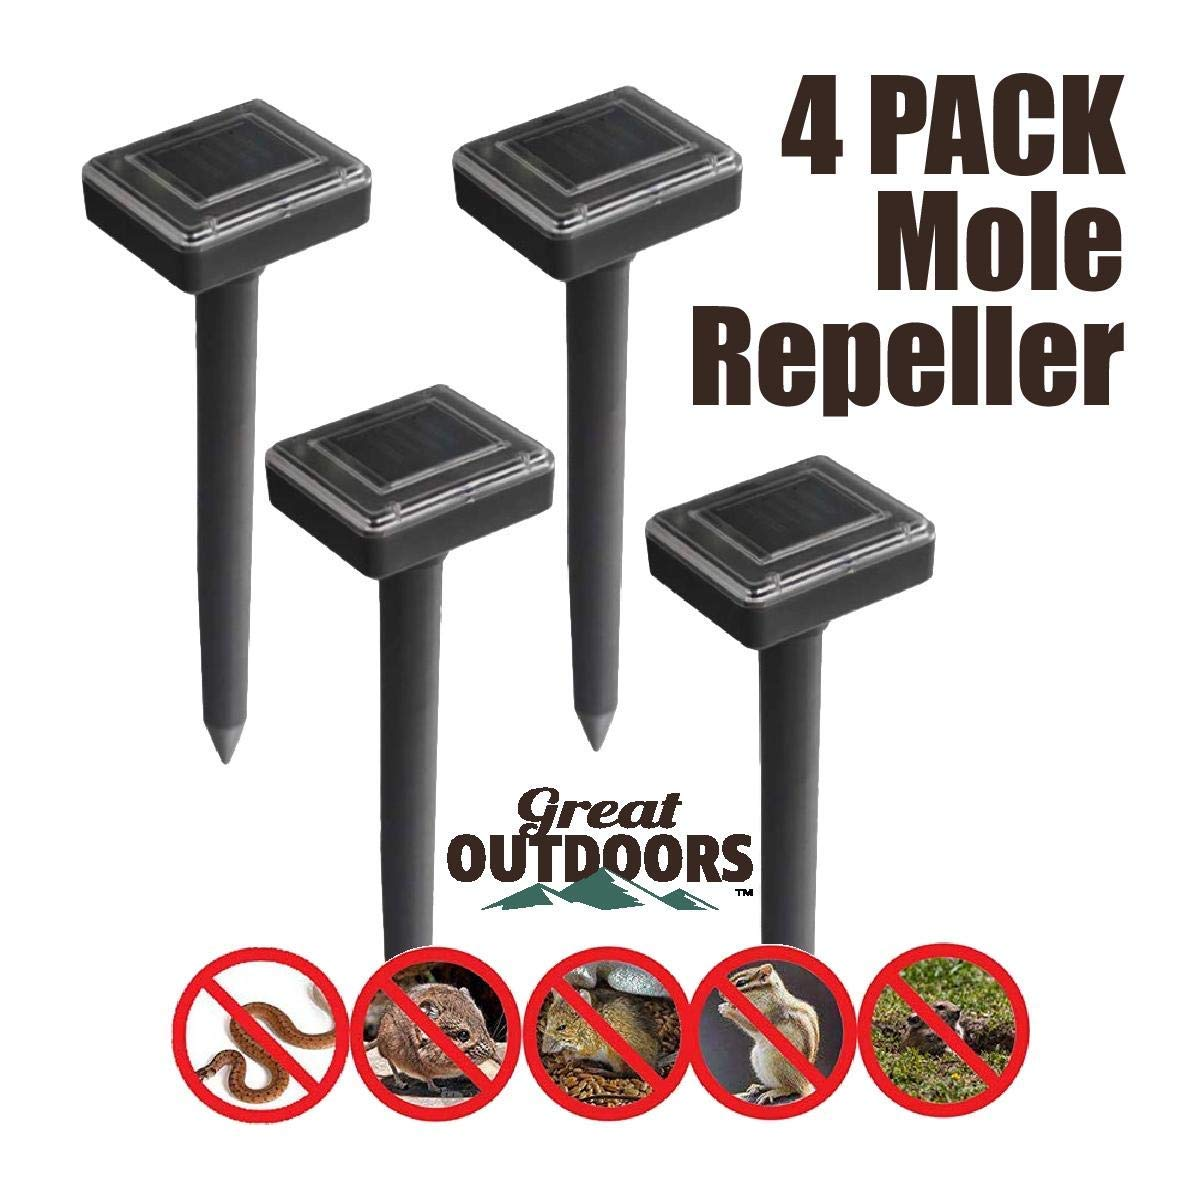 GREAT OUTDOORS TM Sonic Mole Repellent, Deterrent Rodent Ultrasonic Pest Control, Solar Gopher Repellent Vole Chaser Snake and Mole Deterrent Rodent Ultrasonic Pest Control, Underground Repeller by GREAT OUTDOORS TM